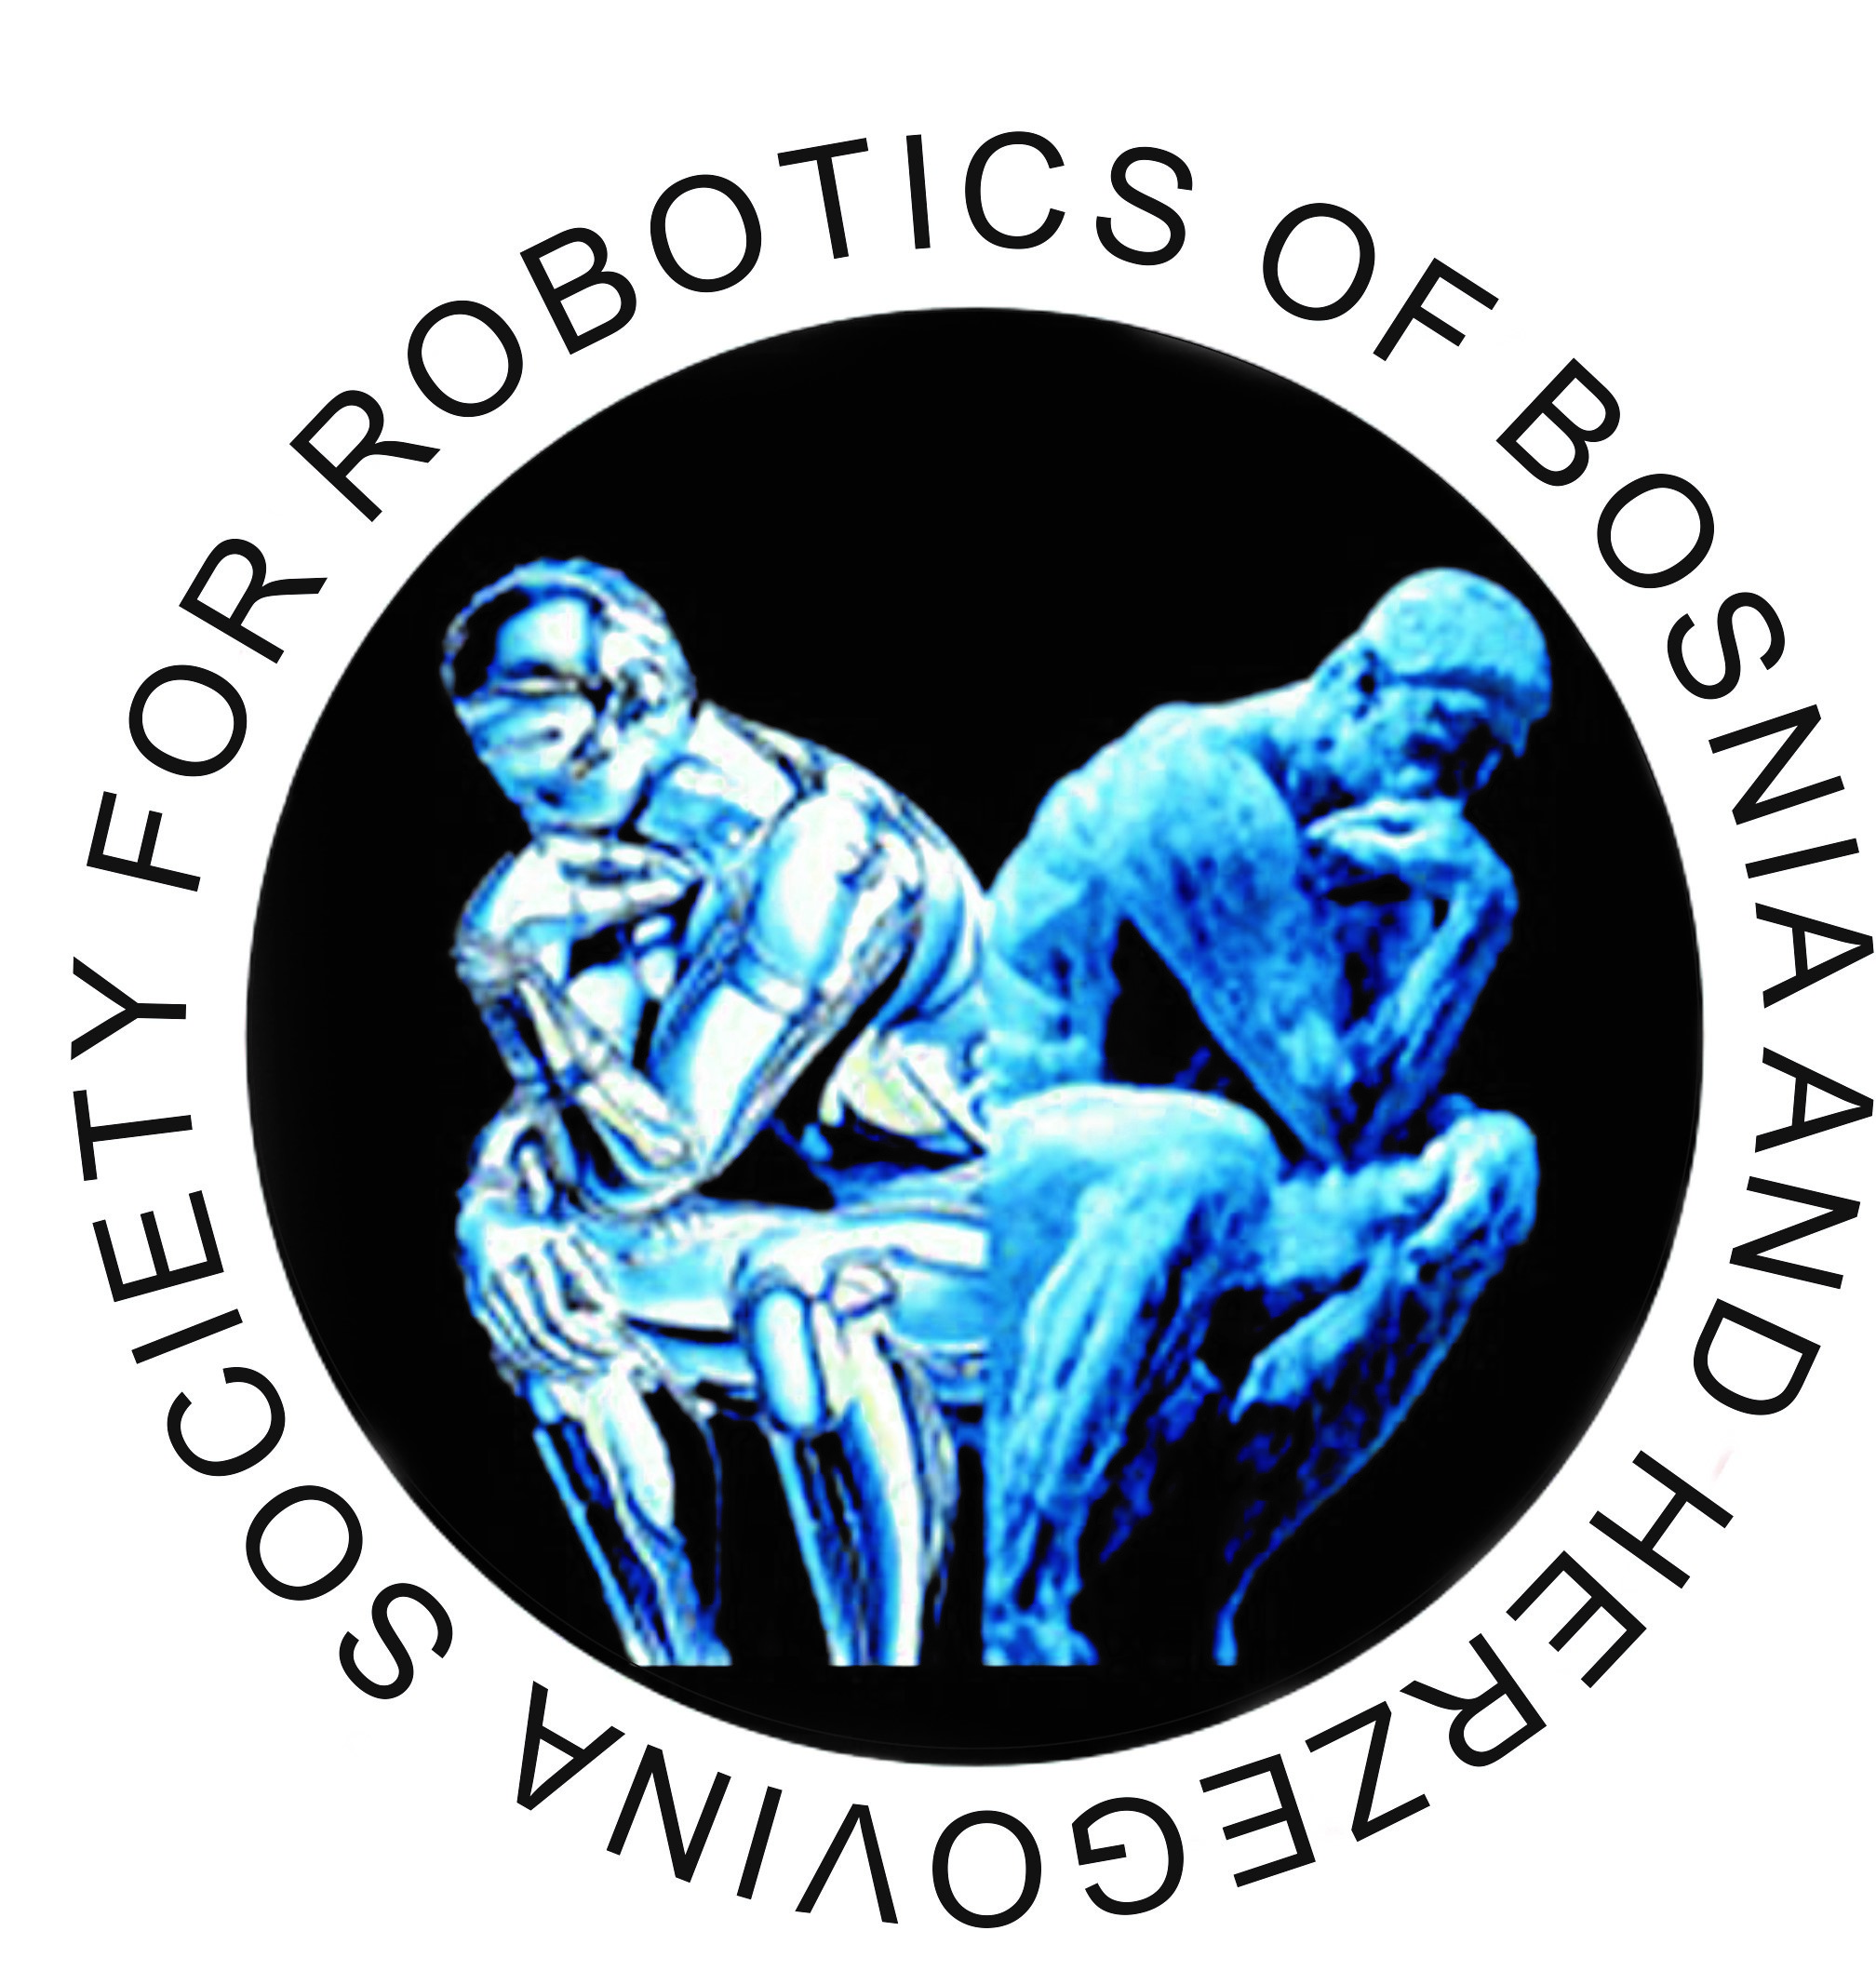 Society for Robotics of Bosnia and Herzegovina